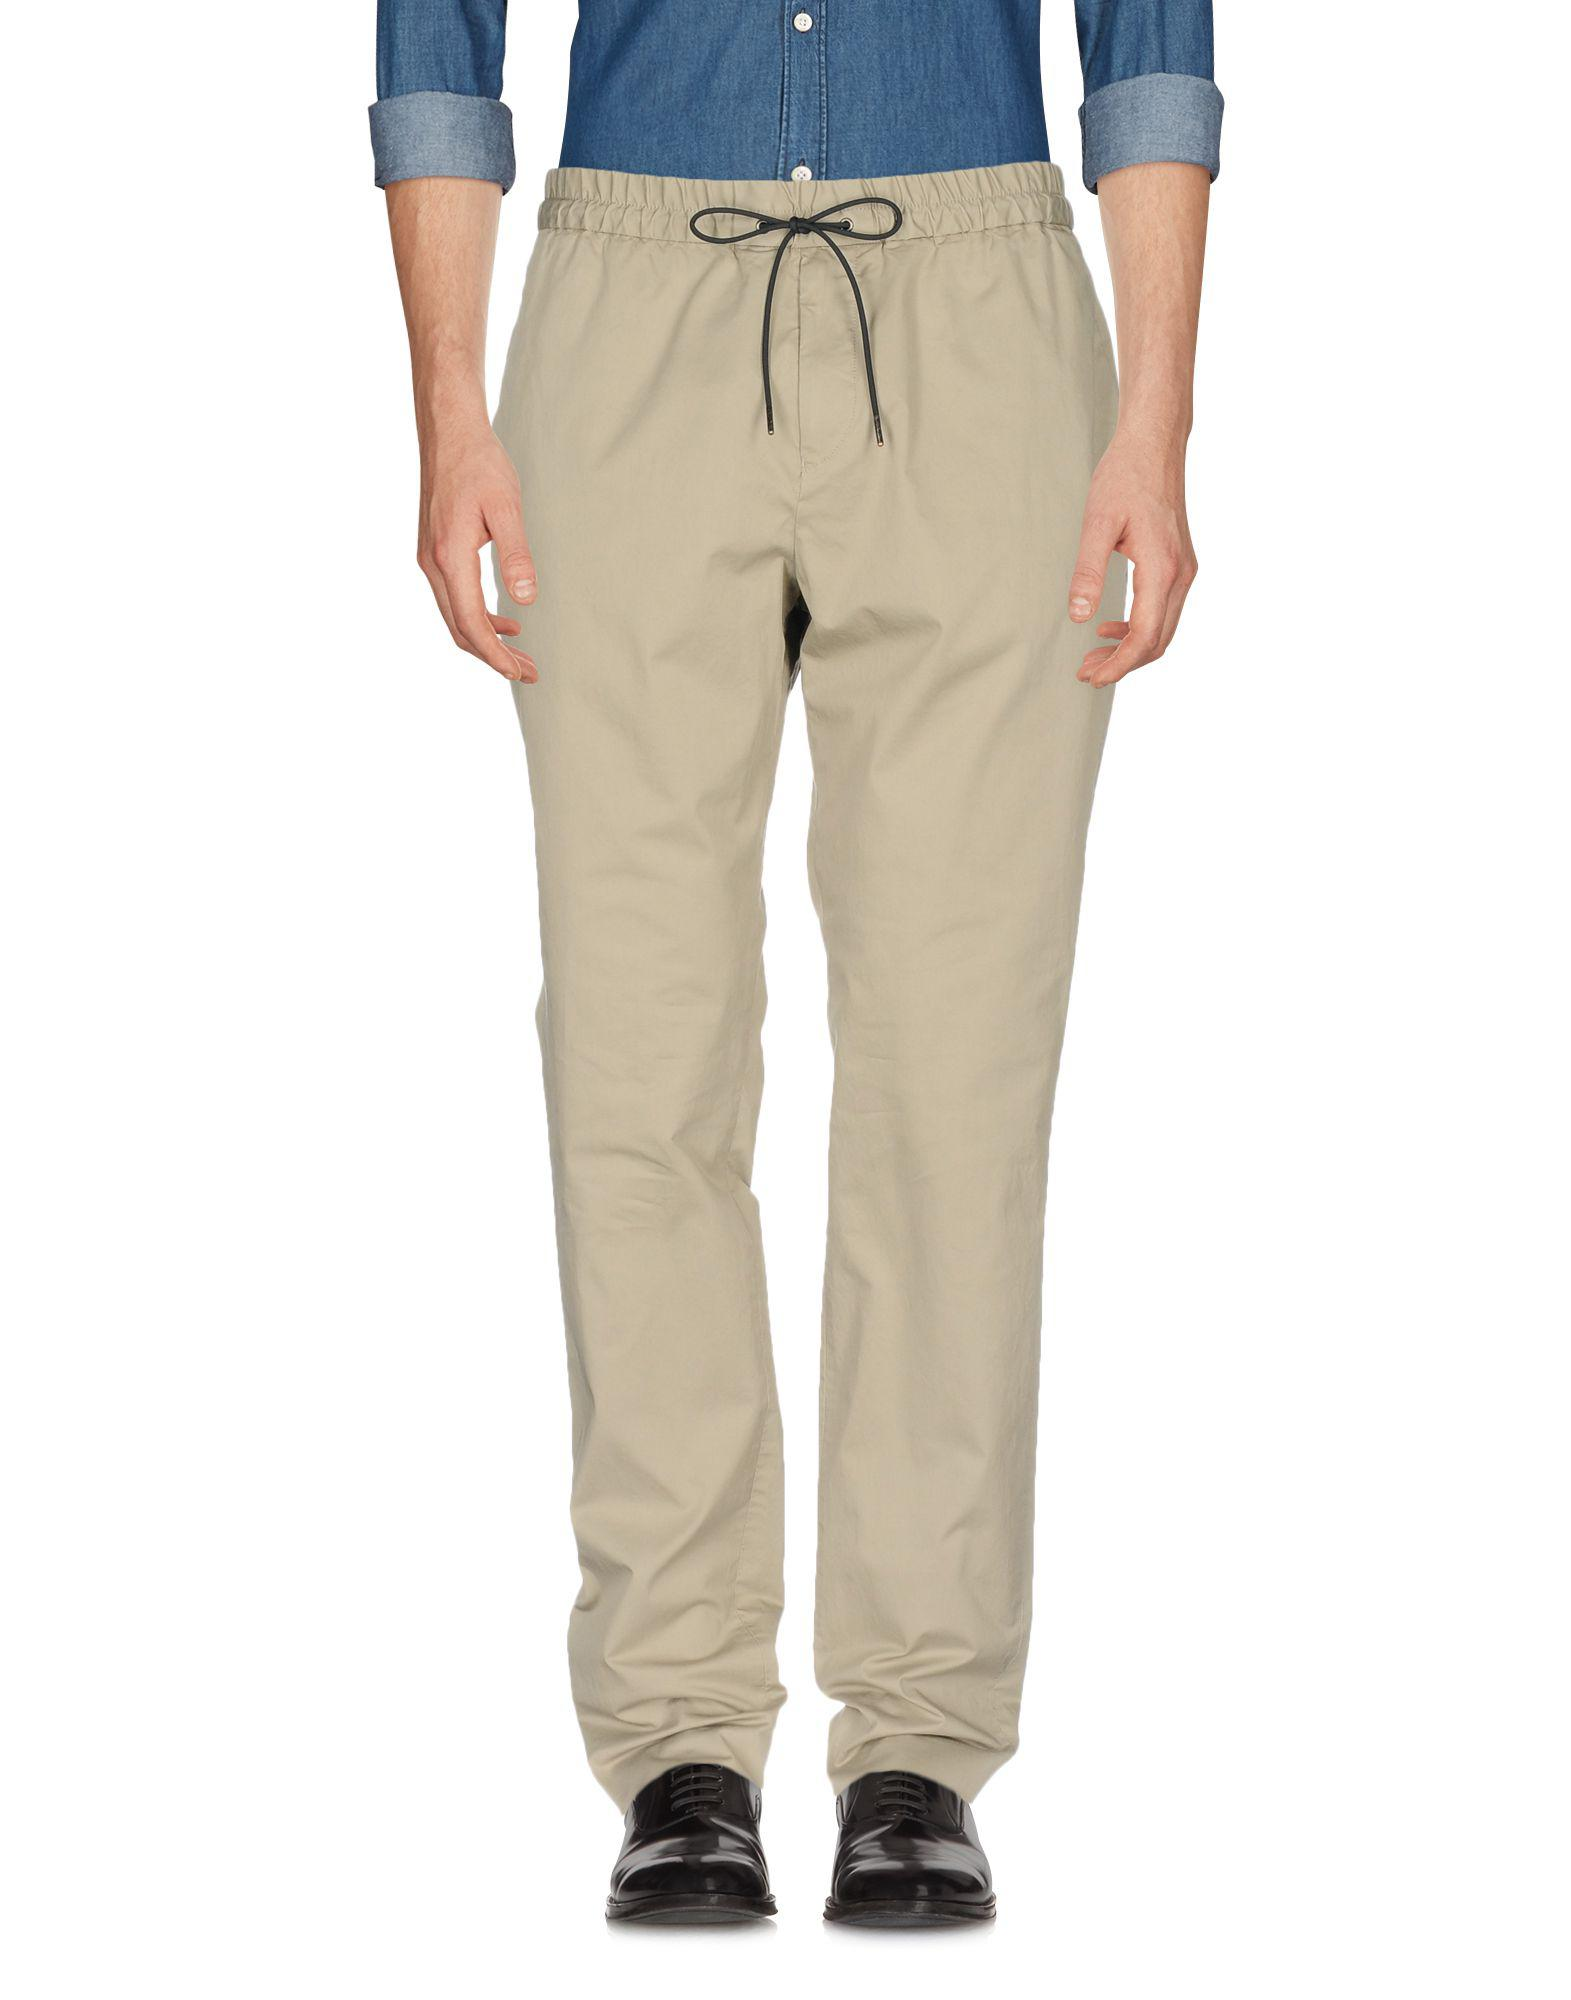 Very Cheap Nicekicks Online TROUSERS - Casual trousers Tomorrowland Eastbay Sale Online Outlet Discount Sale Sale Get To Buy MoPReNnP